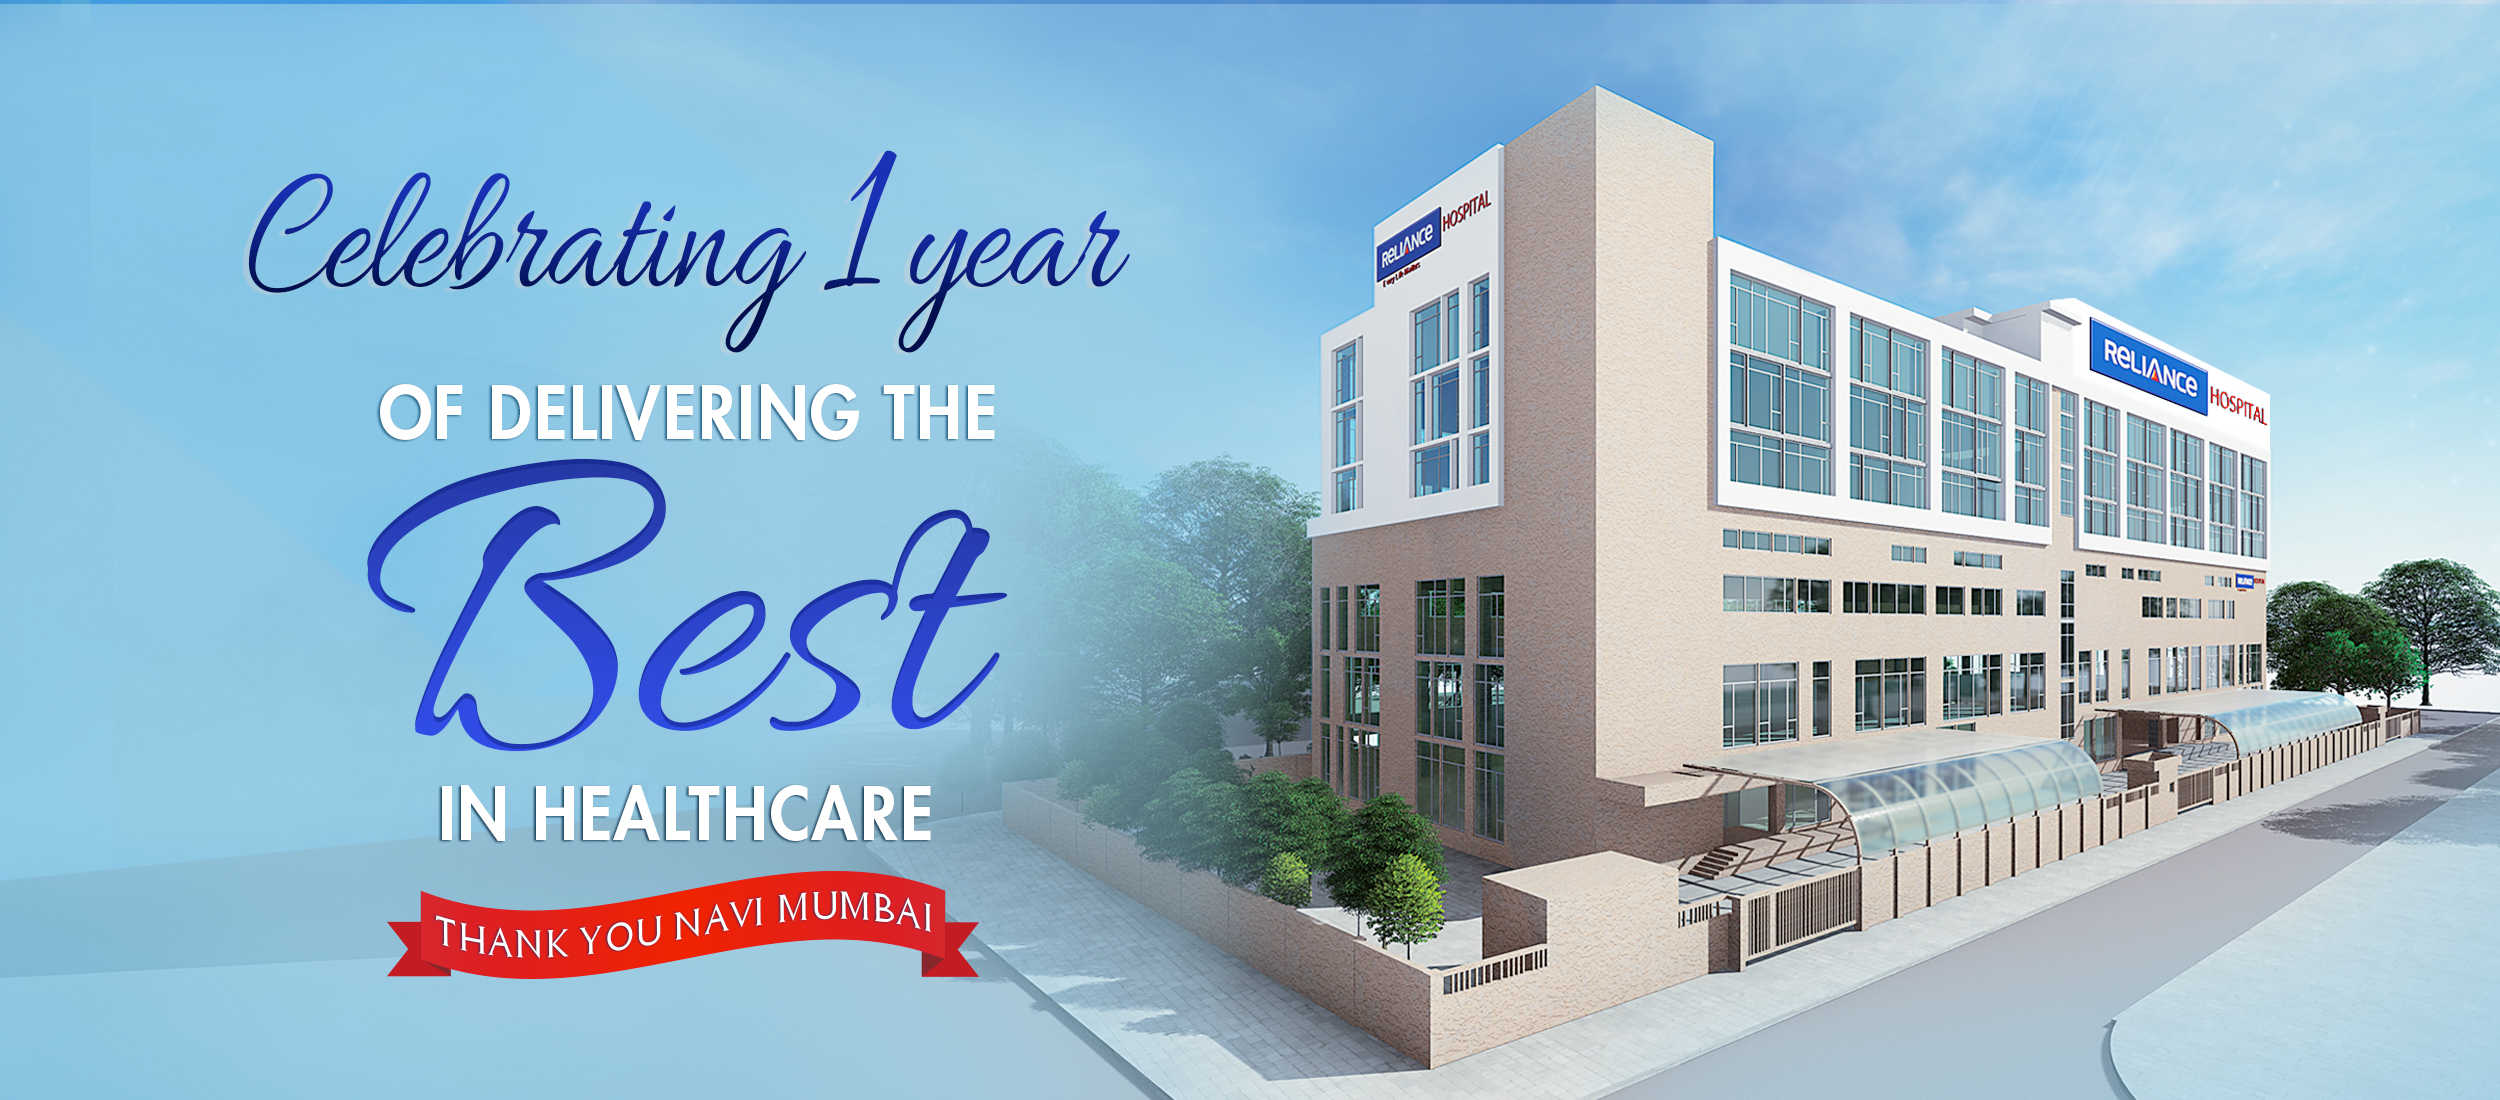 Celebrating One Year of the best healthcare in Navi Mumbai